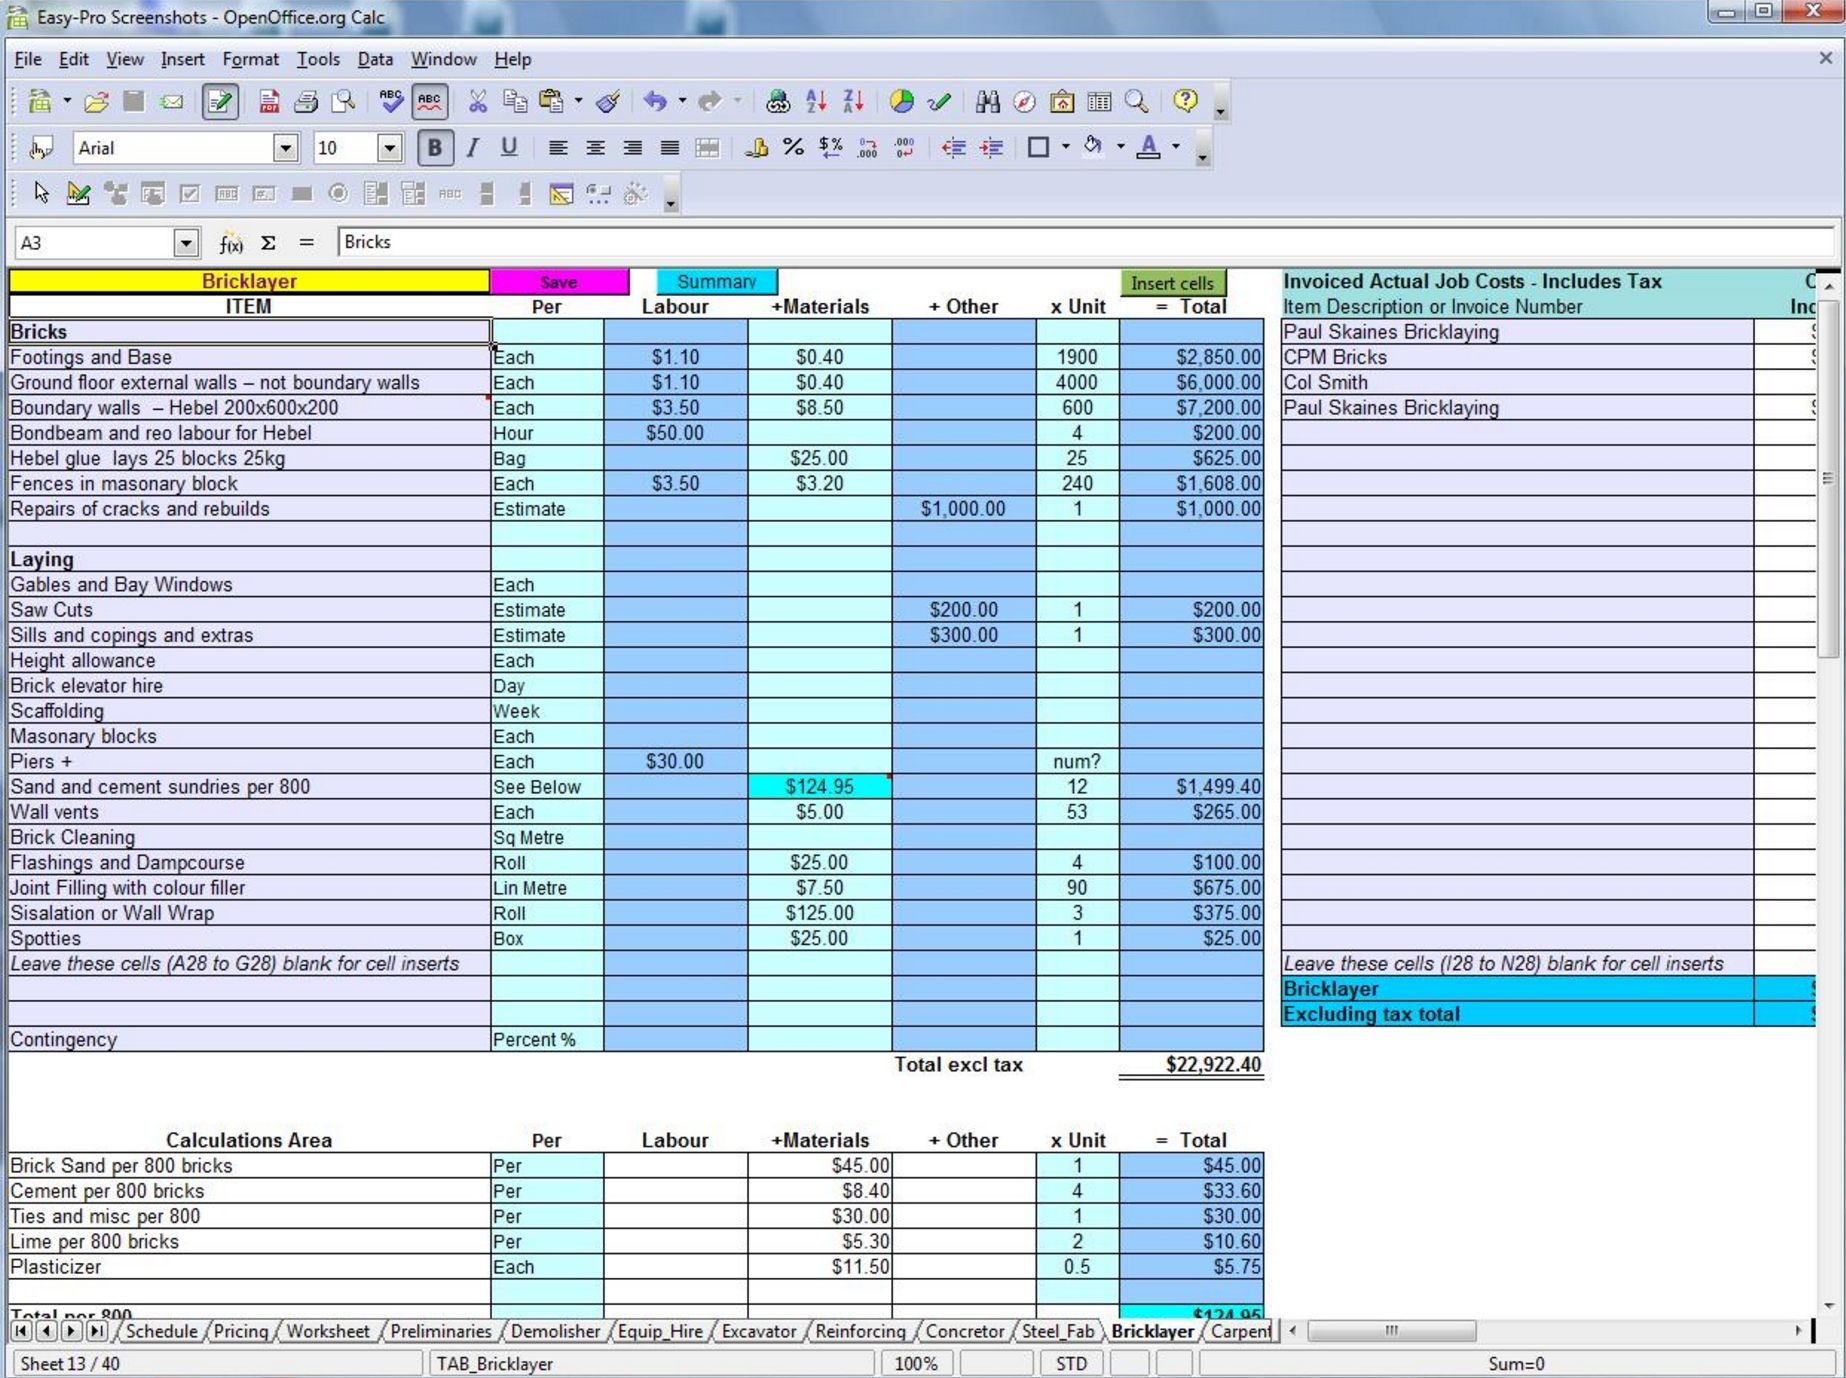 Free Residential Construction Estimating Spreadsheets For Most Homeowners Construction Construction Estimating Software Spreadsheet Template Estimate Template Construction cost estimate template excel